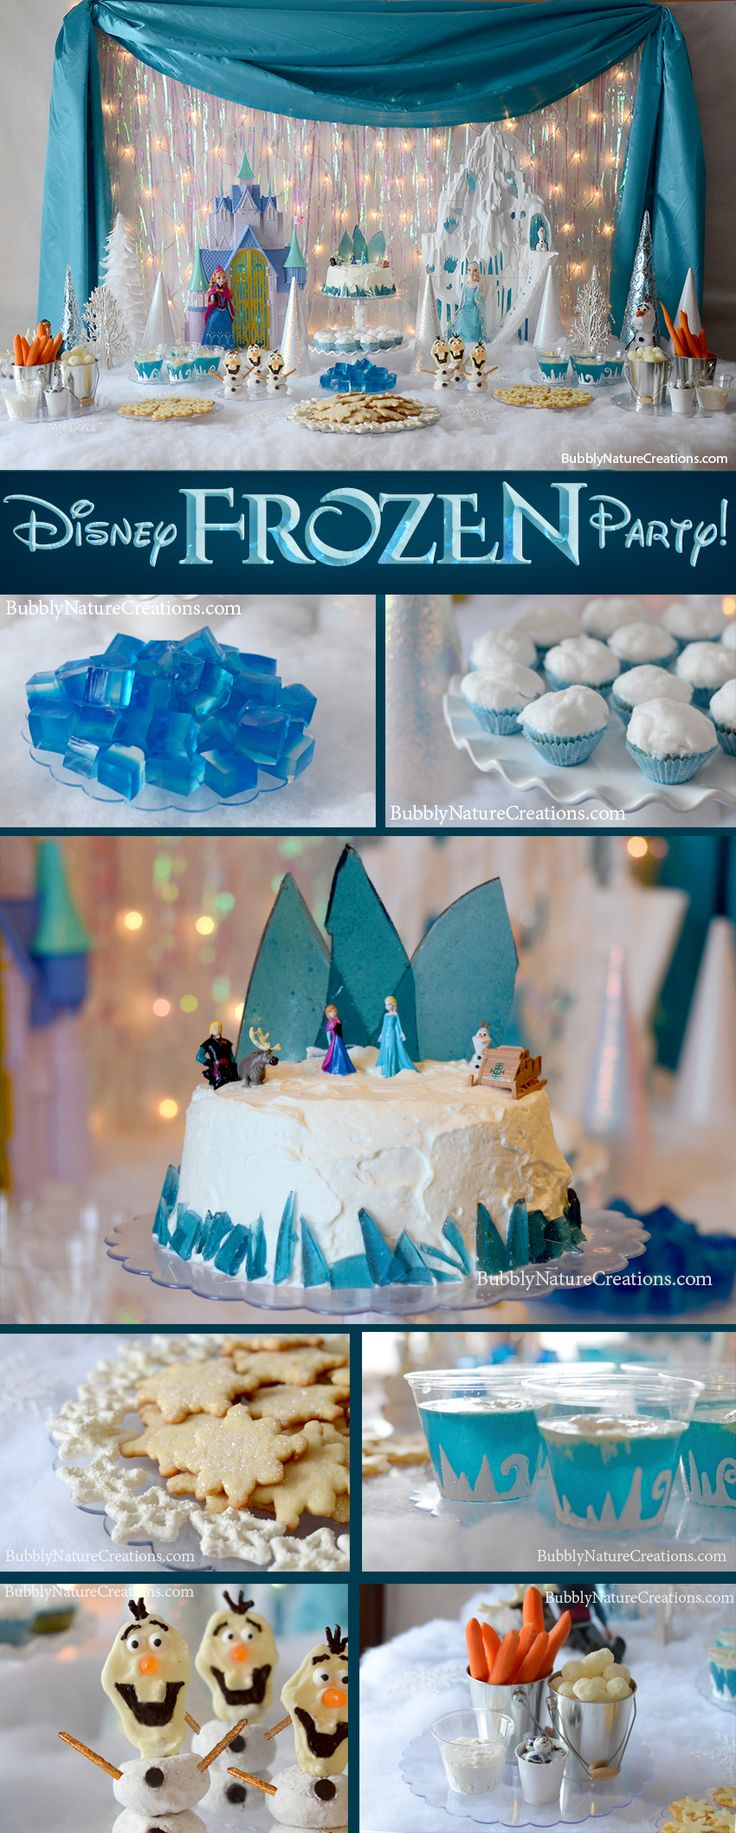 Disney FROZEN Party!!! The Ultimate FROZEN party full of the best ideas!